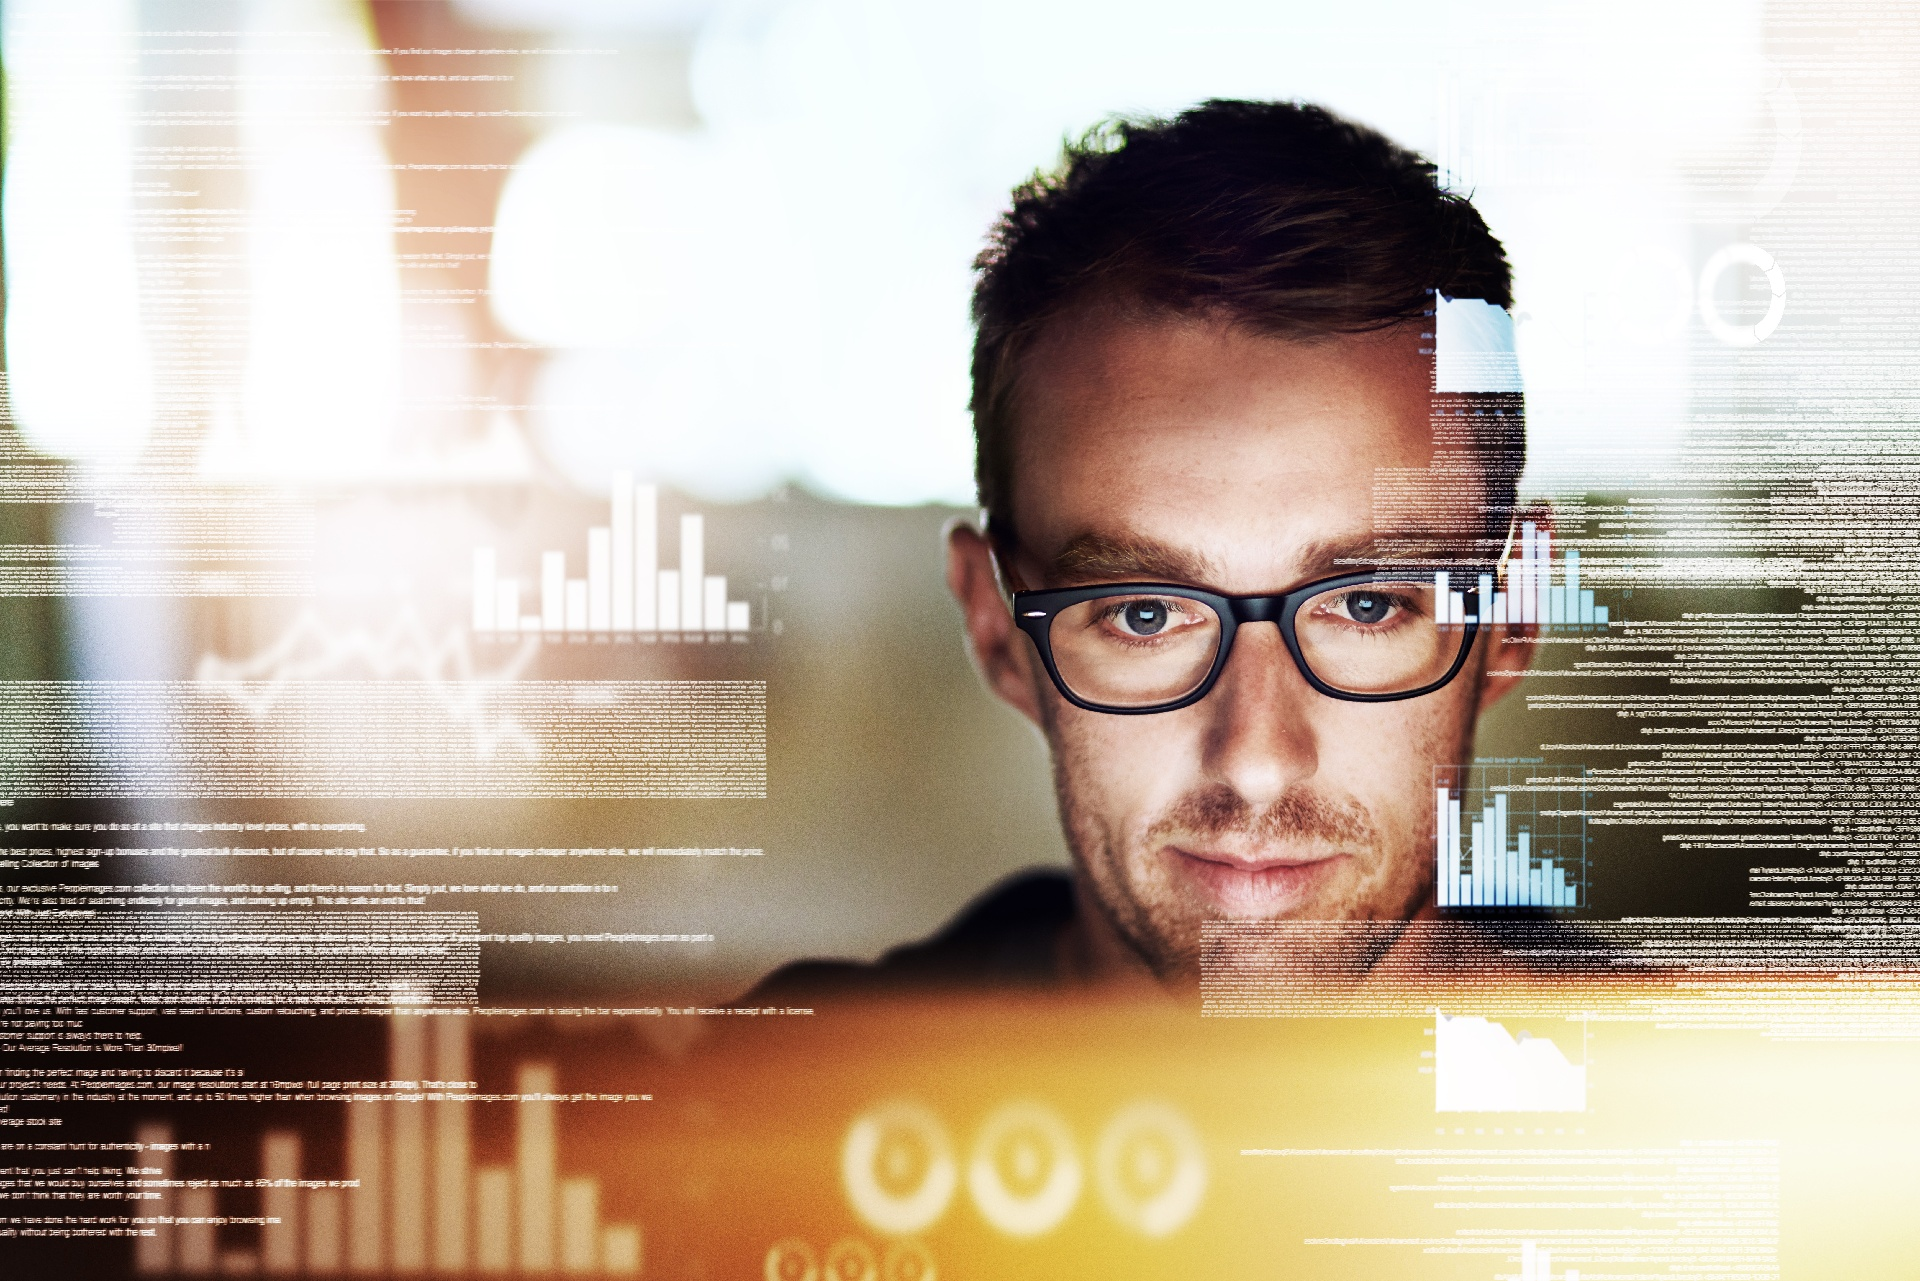 Man in glasses working in cloud computing environment